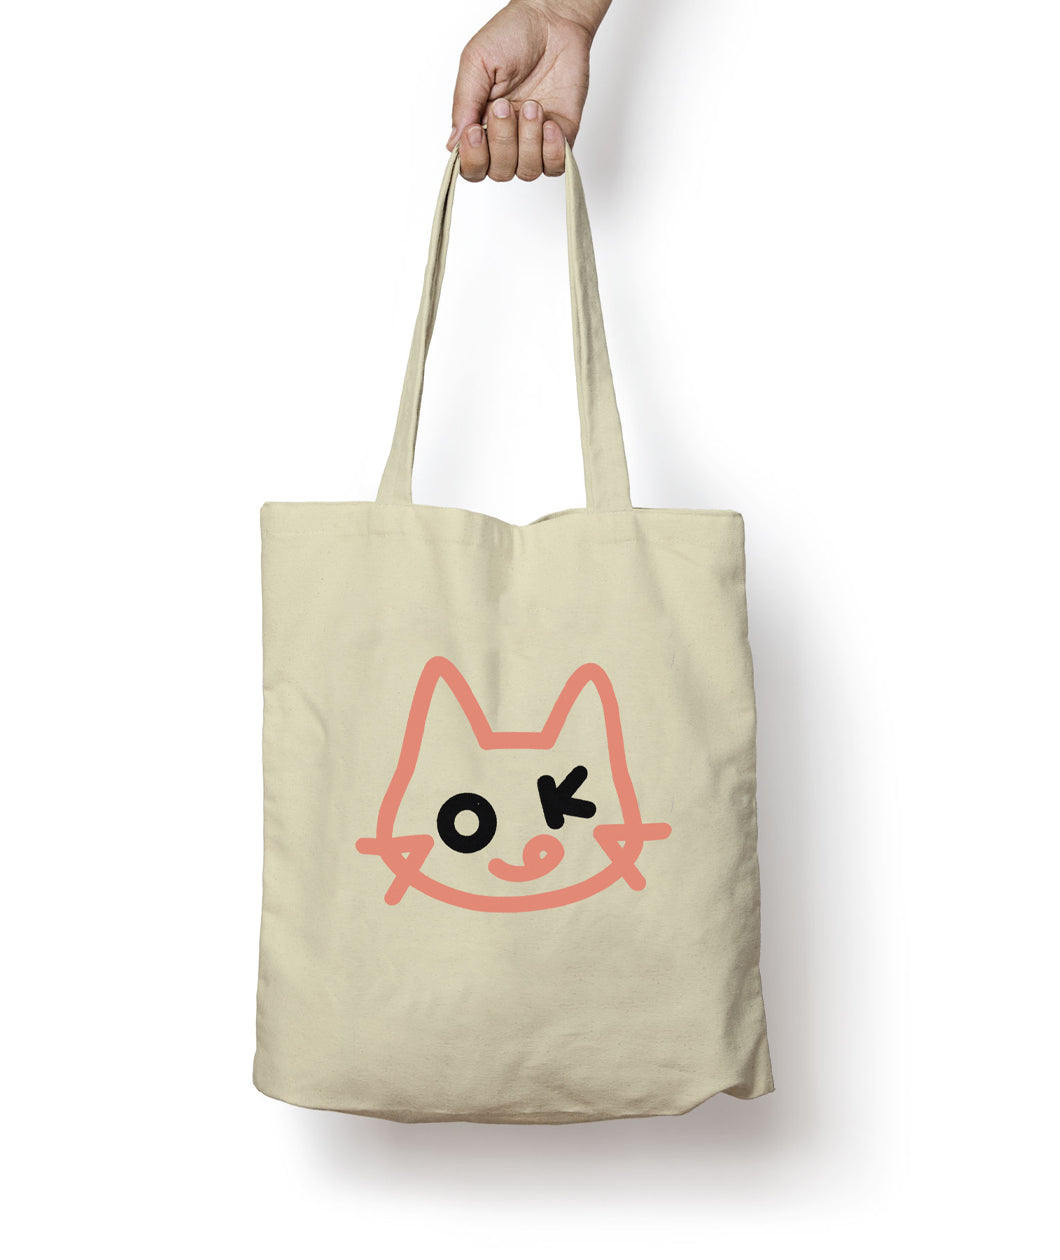 OK CAT tote bag